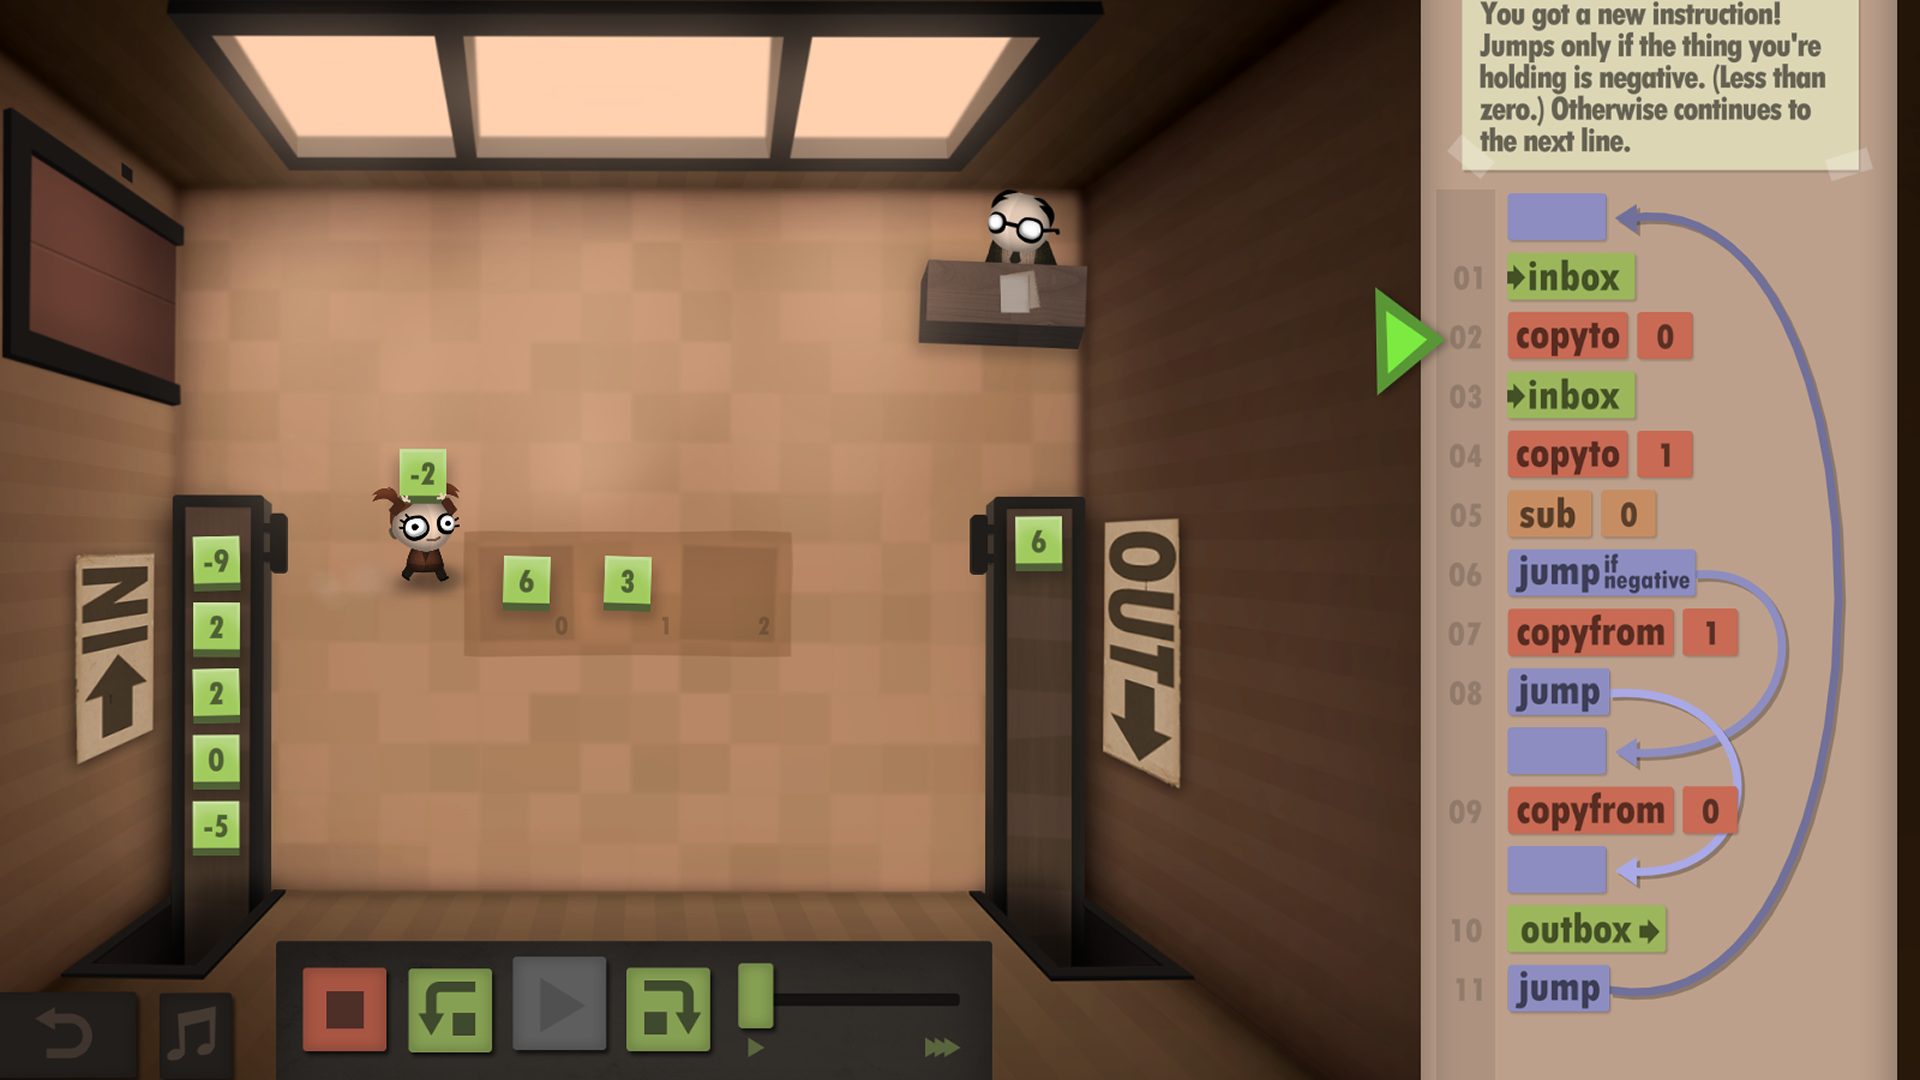 Human Resource Machine Puzzle solving, Game programming